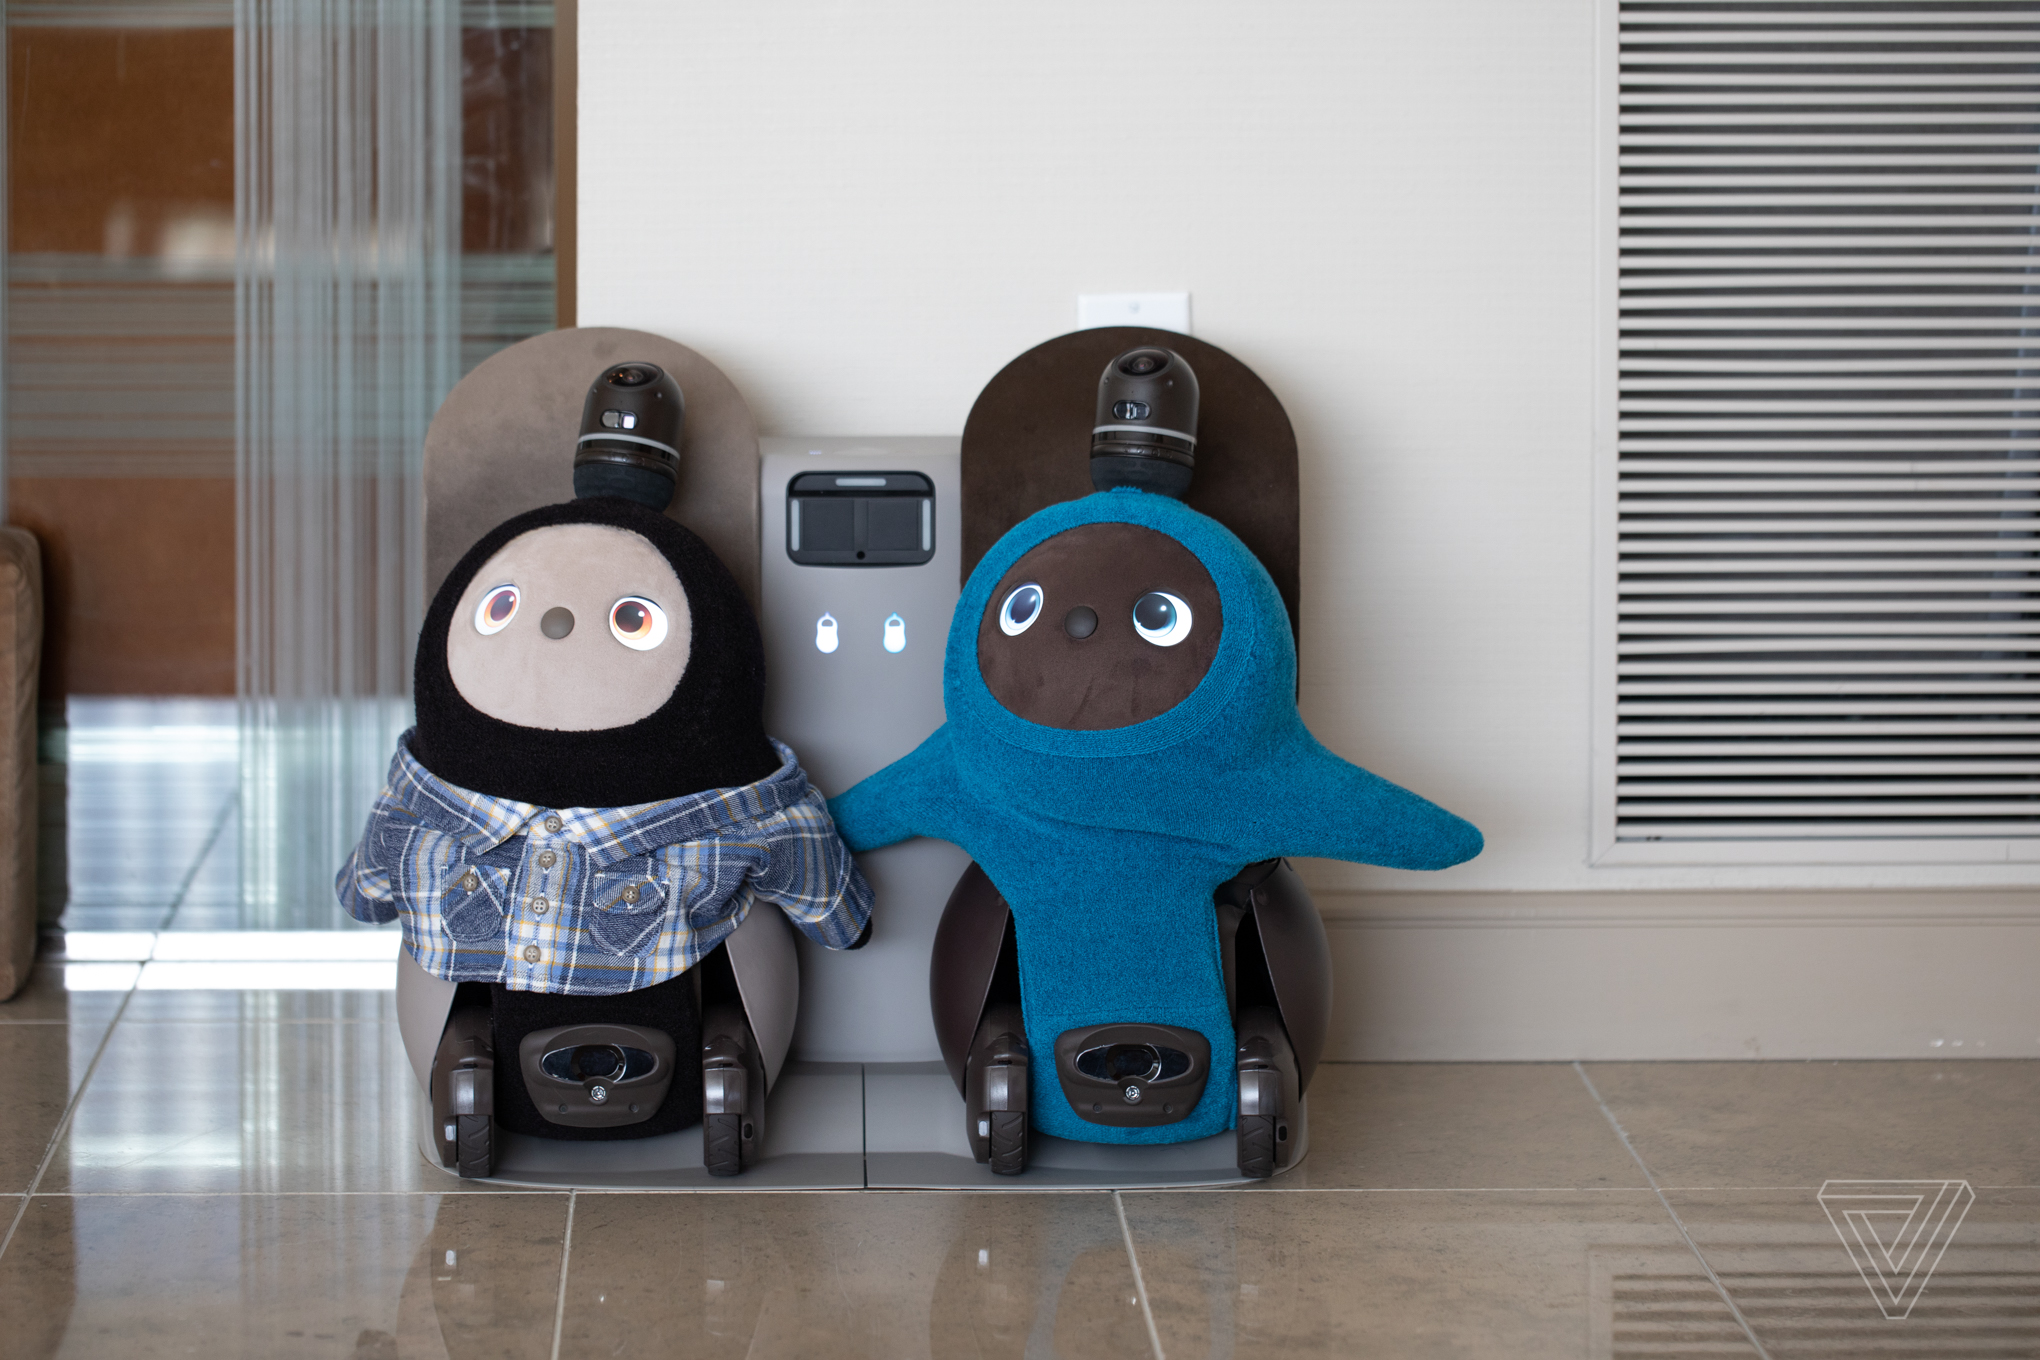 Lovot is the first robot I can see myself getting attached